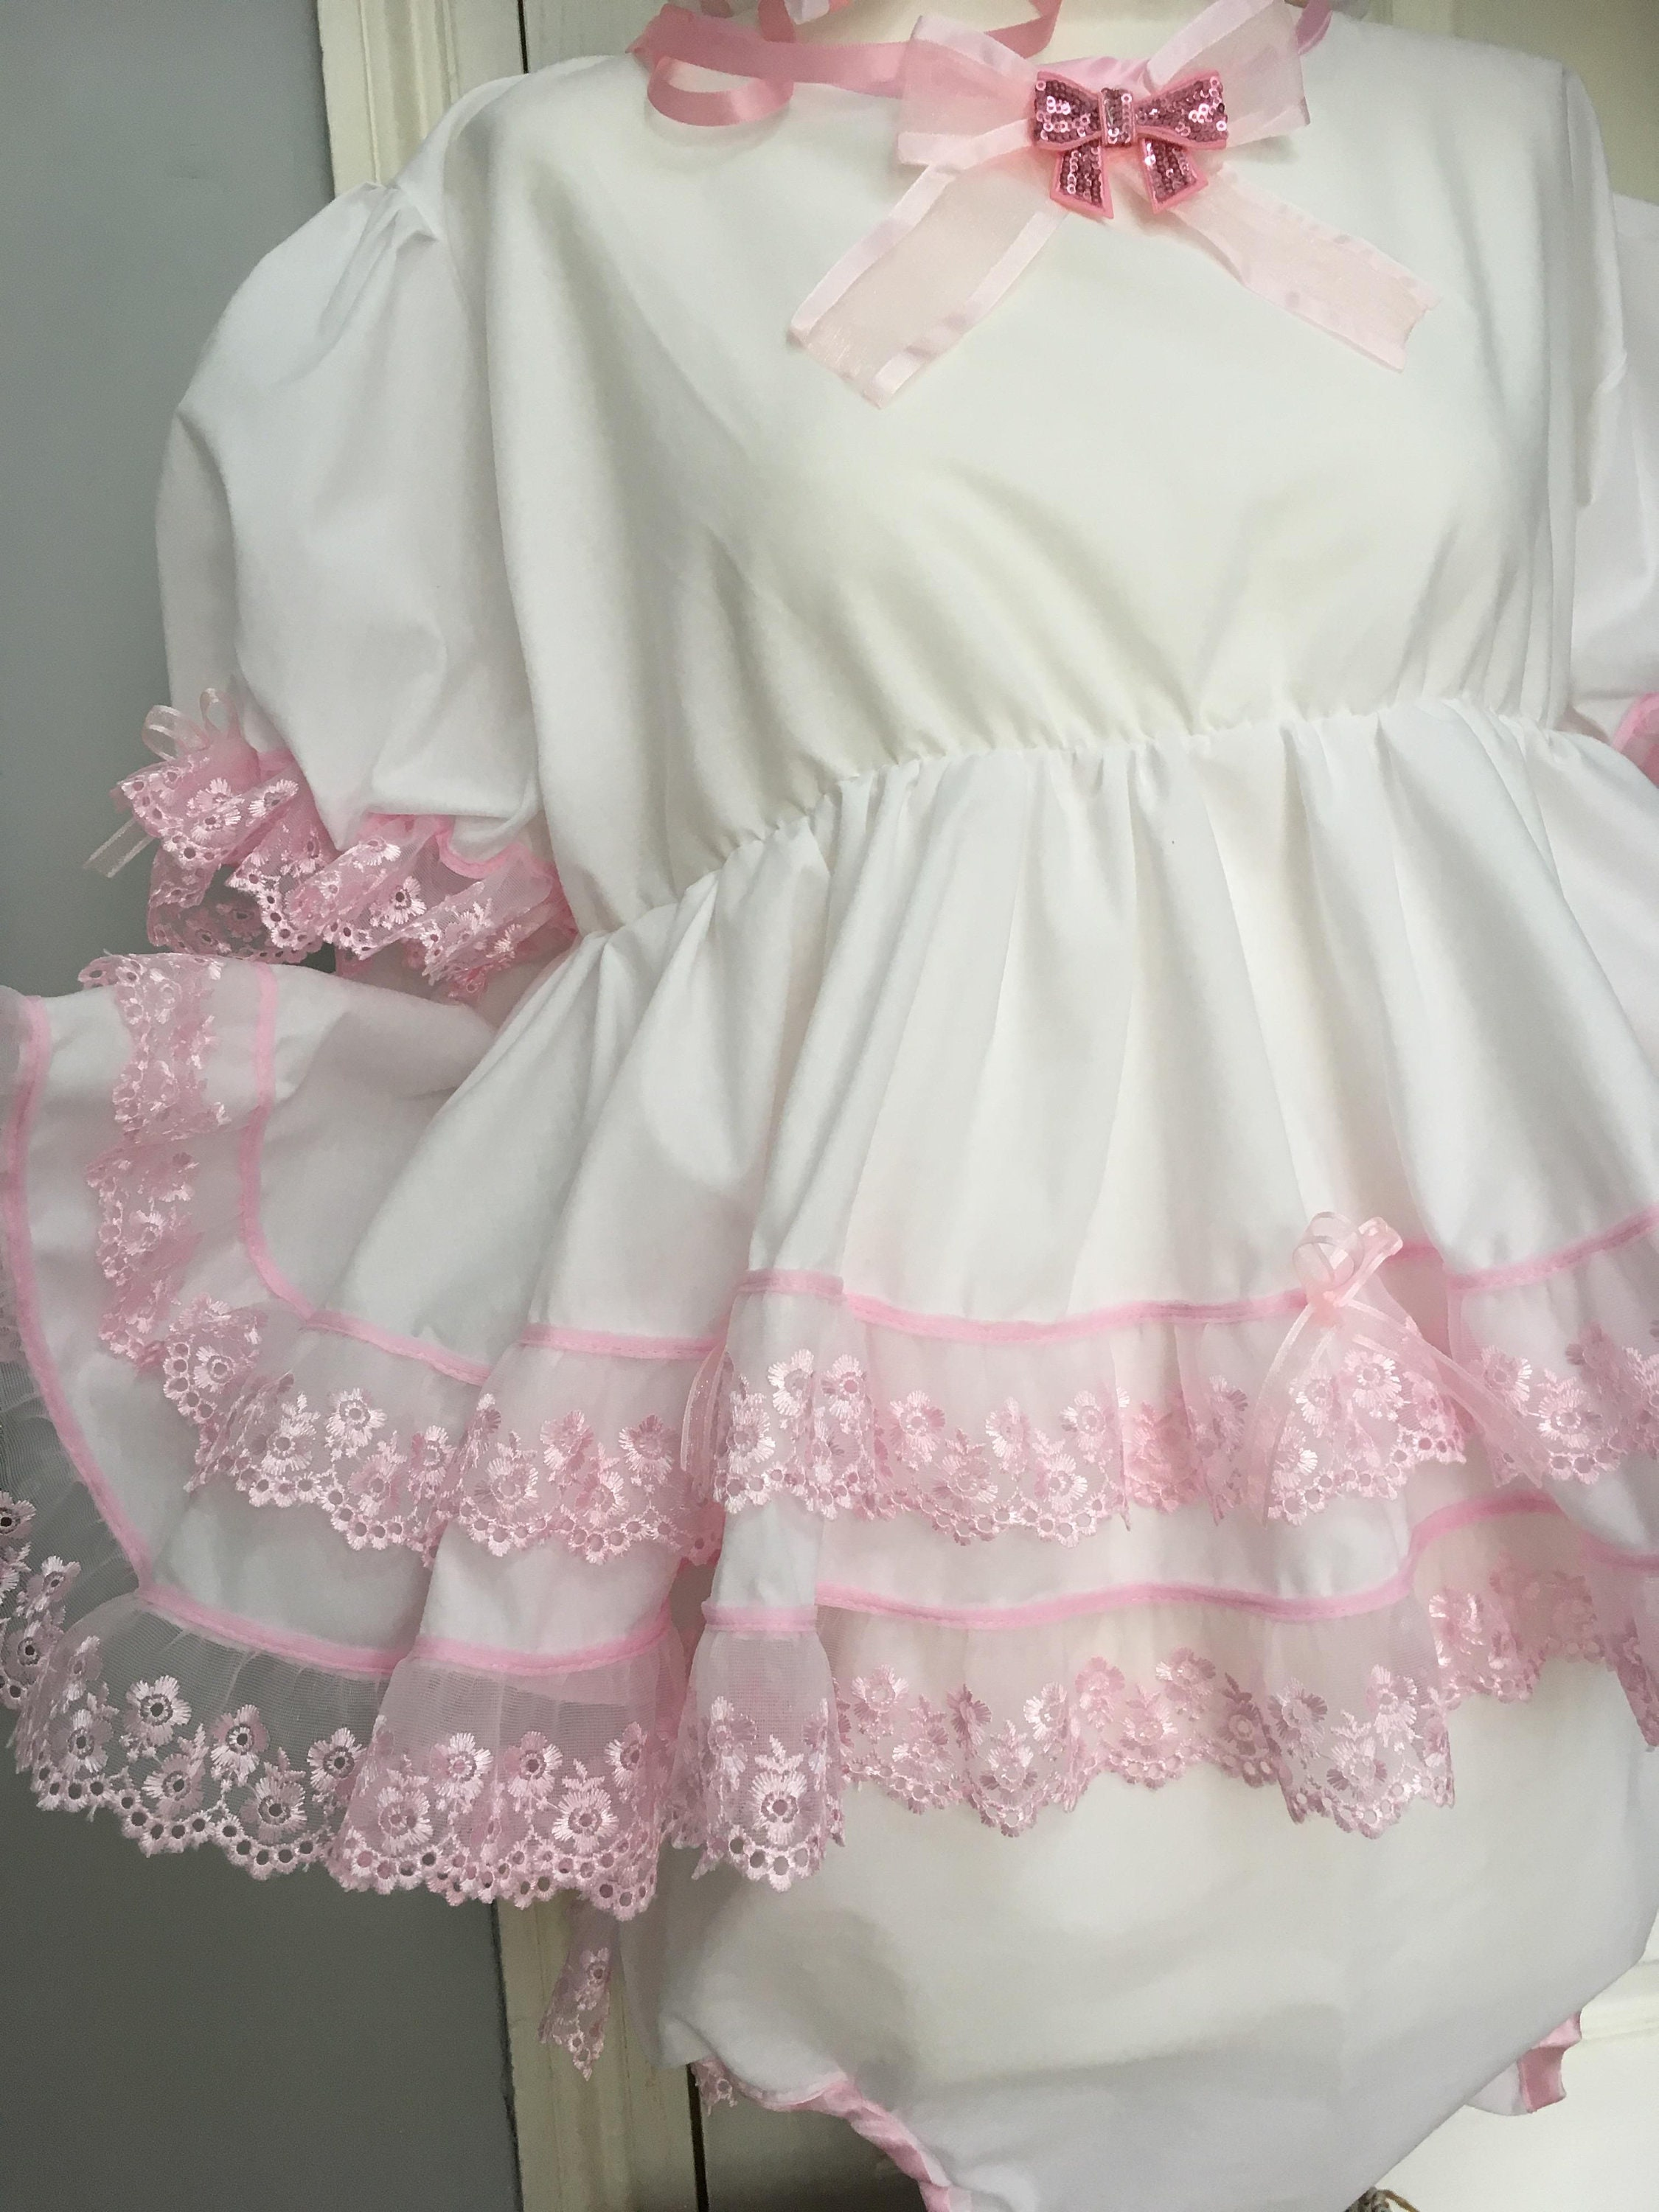 Sale All Sizes 100gbp Adult Baby Sissy Short Romper Dress